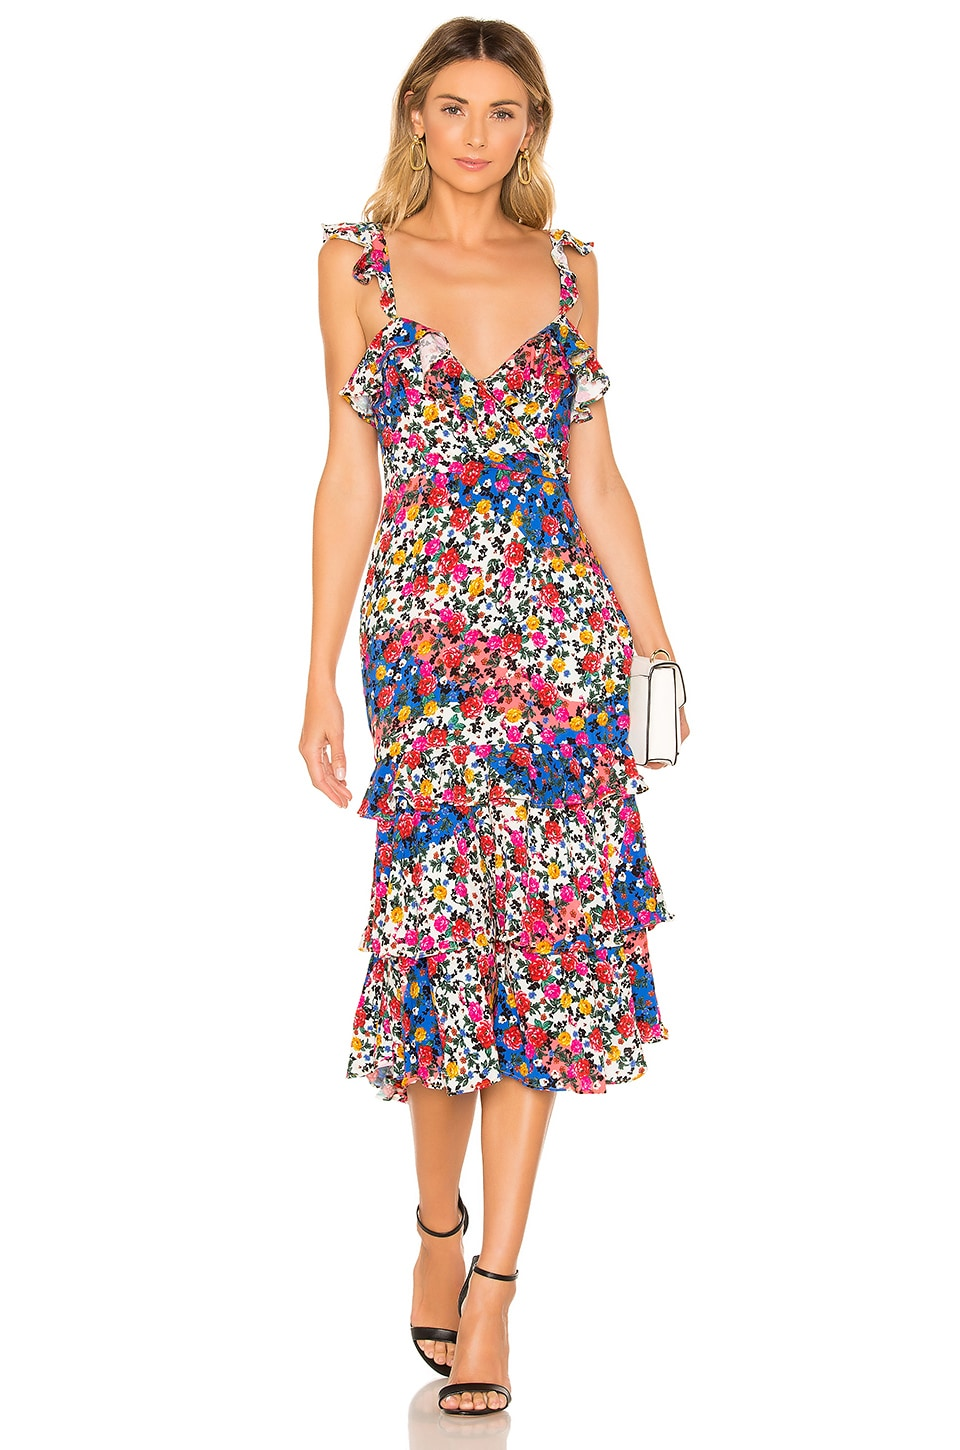 Nolita Midi Dress             MAJORELLE                                                                                                                                         Sale price:                                                                       CA$ 237.44                                                                                                  Previous price:                                                                       CA$ 338.39 6